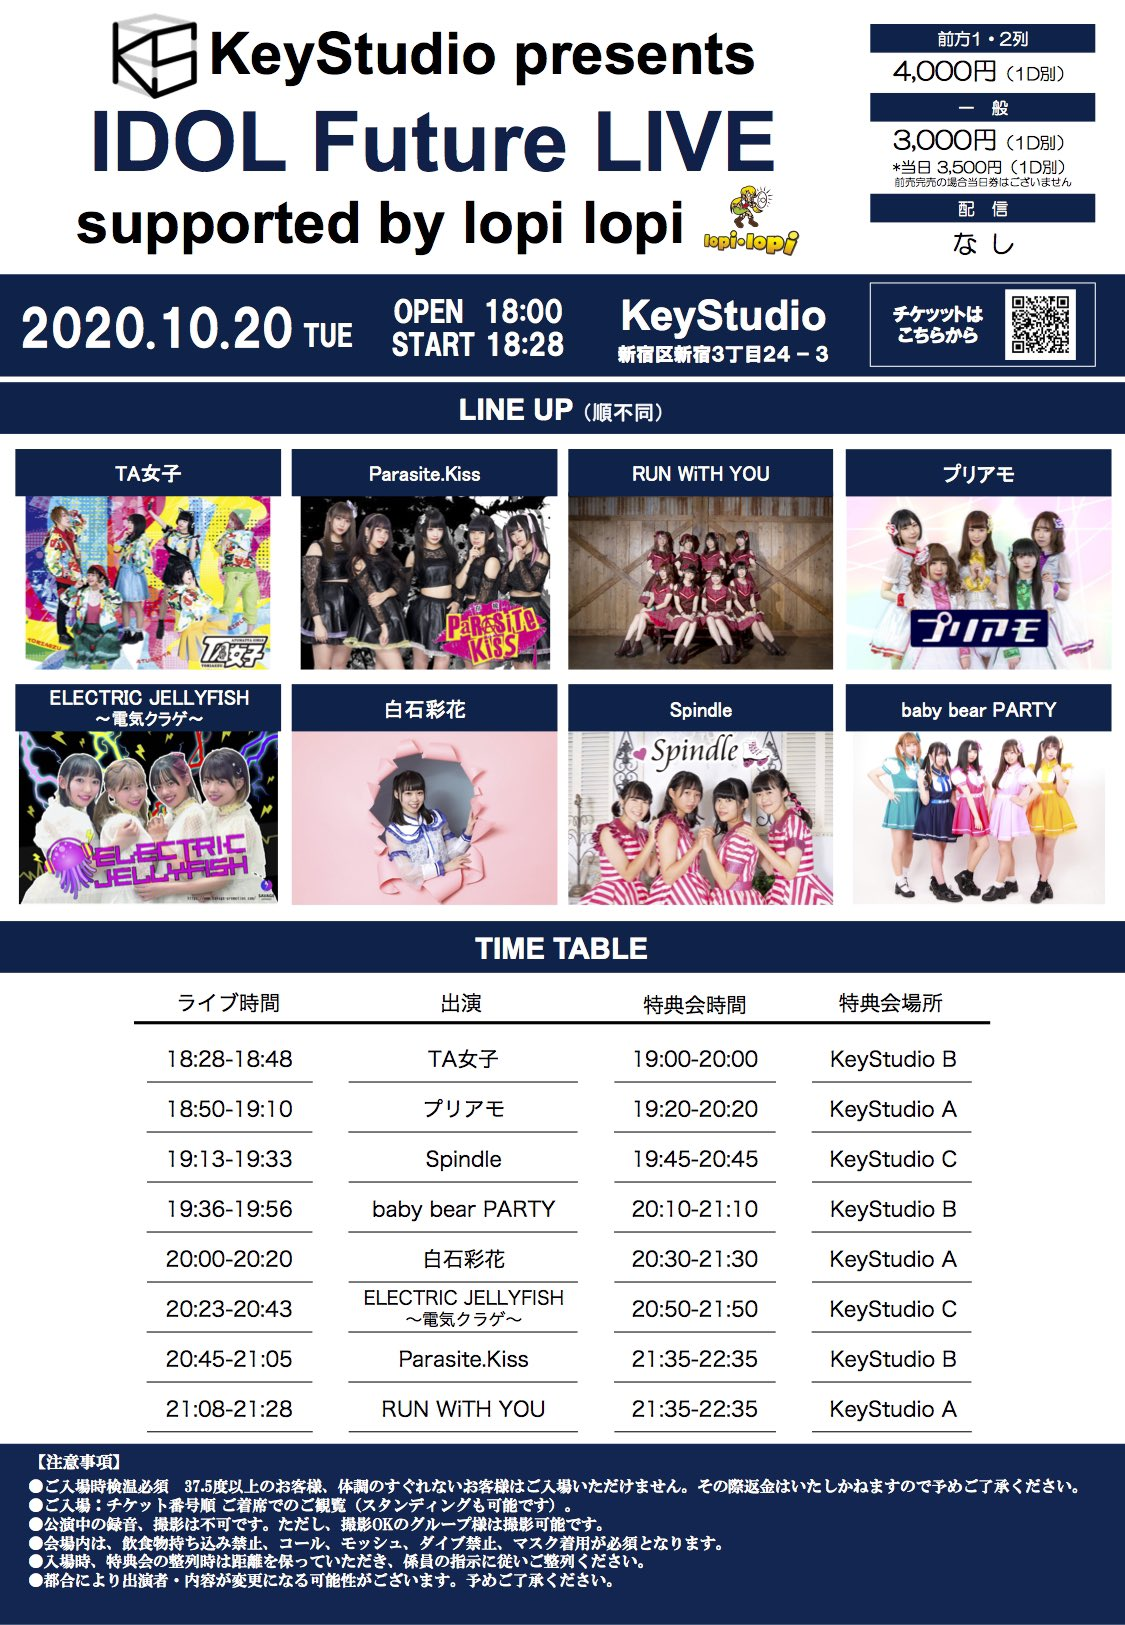 Keystudio Presents IDOL Future LIVE supported by lopi lopi